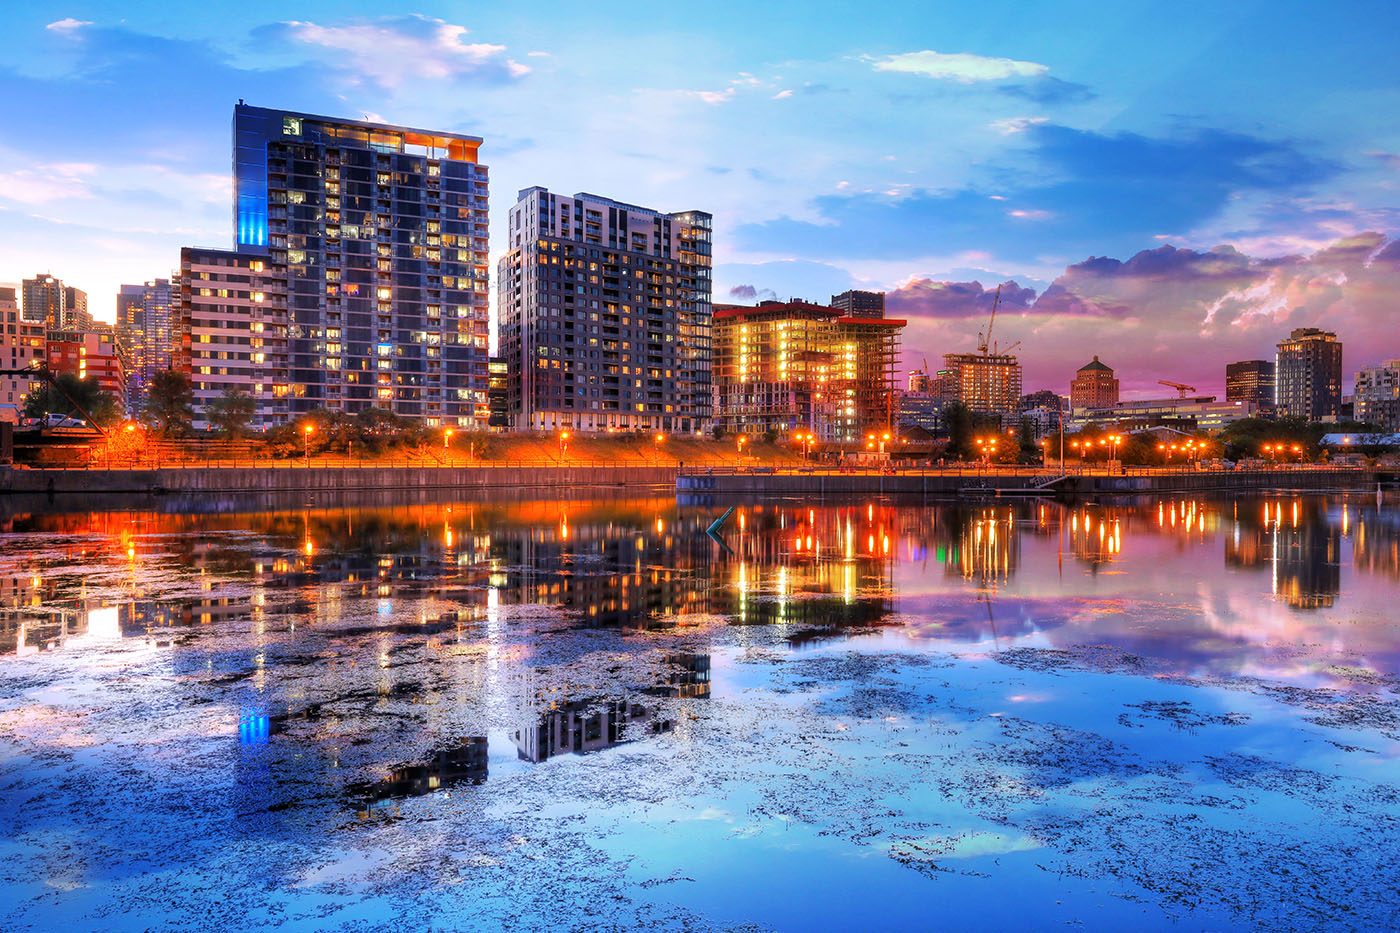 2020 Downtown Montreal City Water Reflection at Sunset - stock photos and royalty-free images